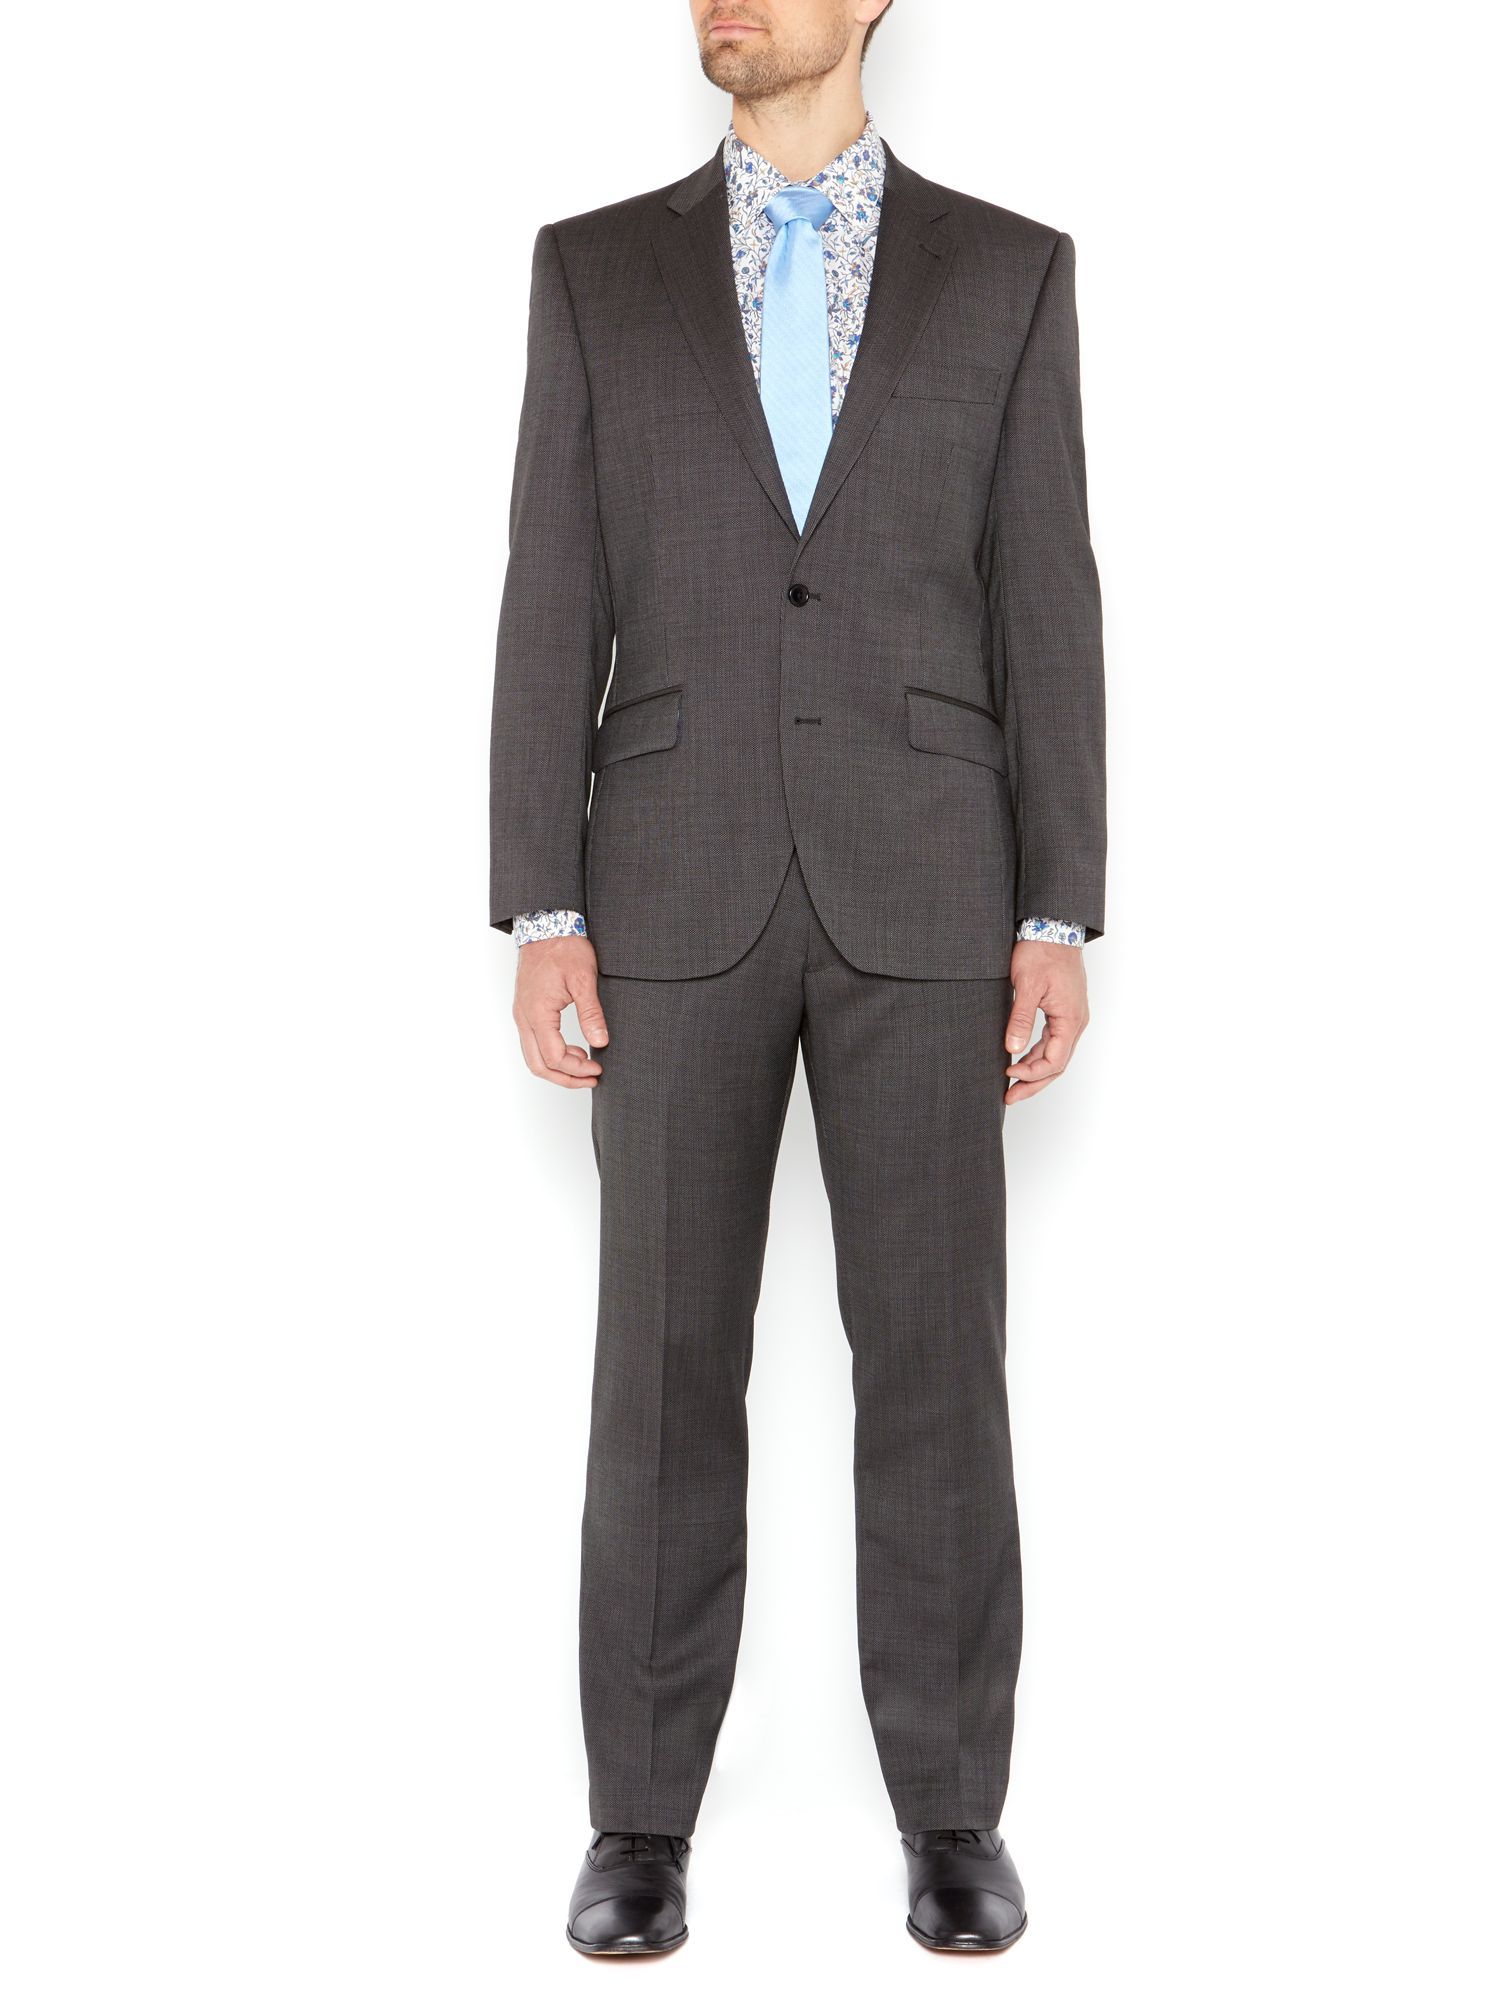 Albert Birdseye Suit Jacket